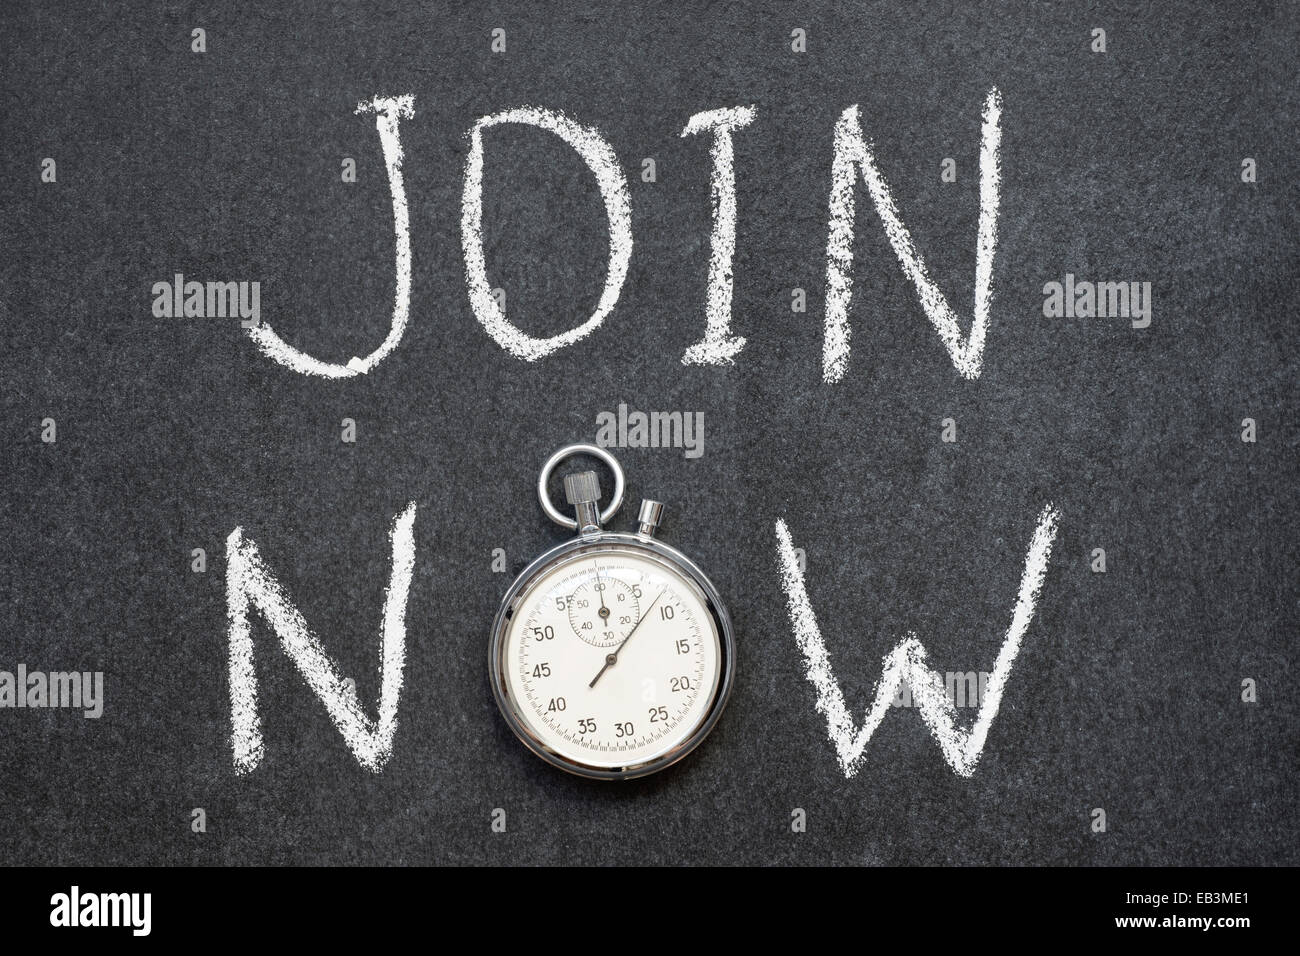 join now concept handwritten on chalkboard with vintage precise stopwatch used instead of O - Stock Image